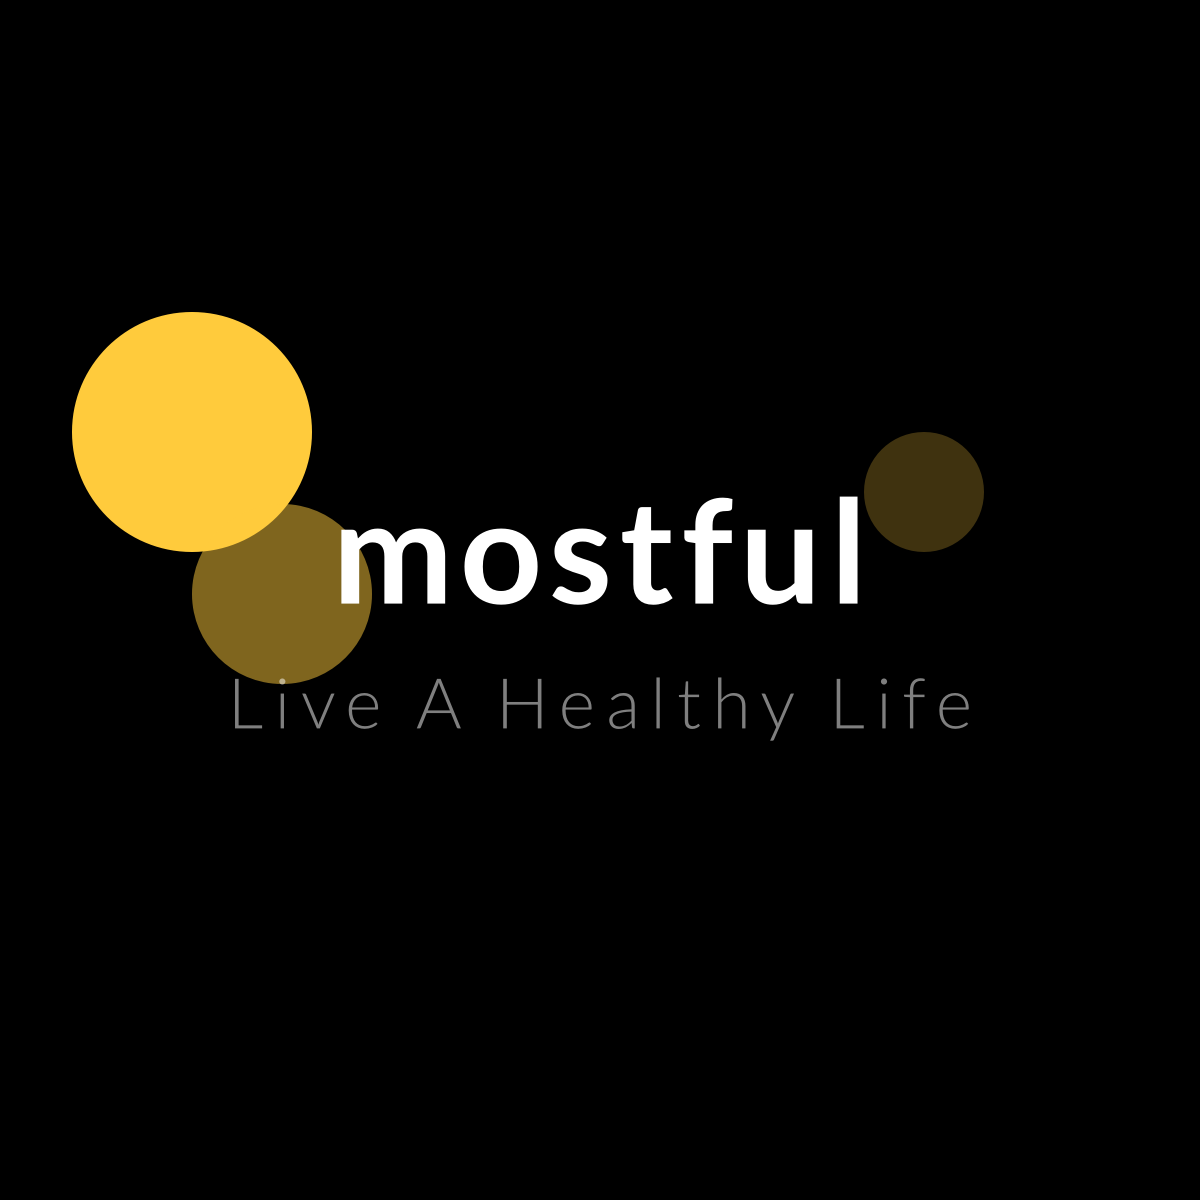 mostful - live a healthy life